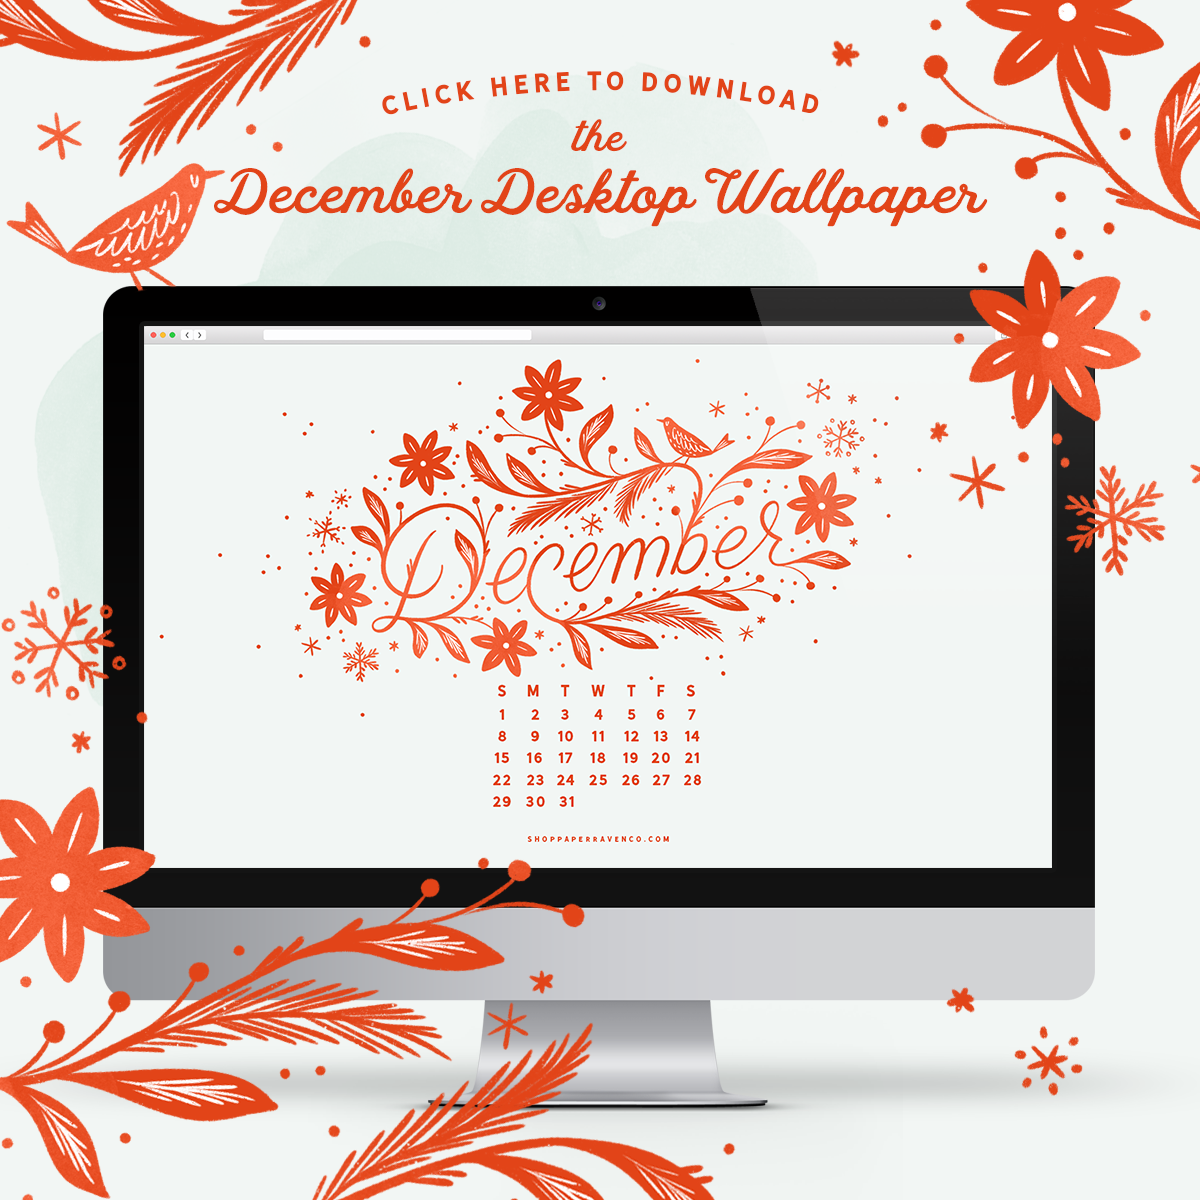 December 2019 Desktop Wallpaper by Paper Raven Co. | www.ShopPaperRavenCo.com #dressyourtech #desktopwallpaper